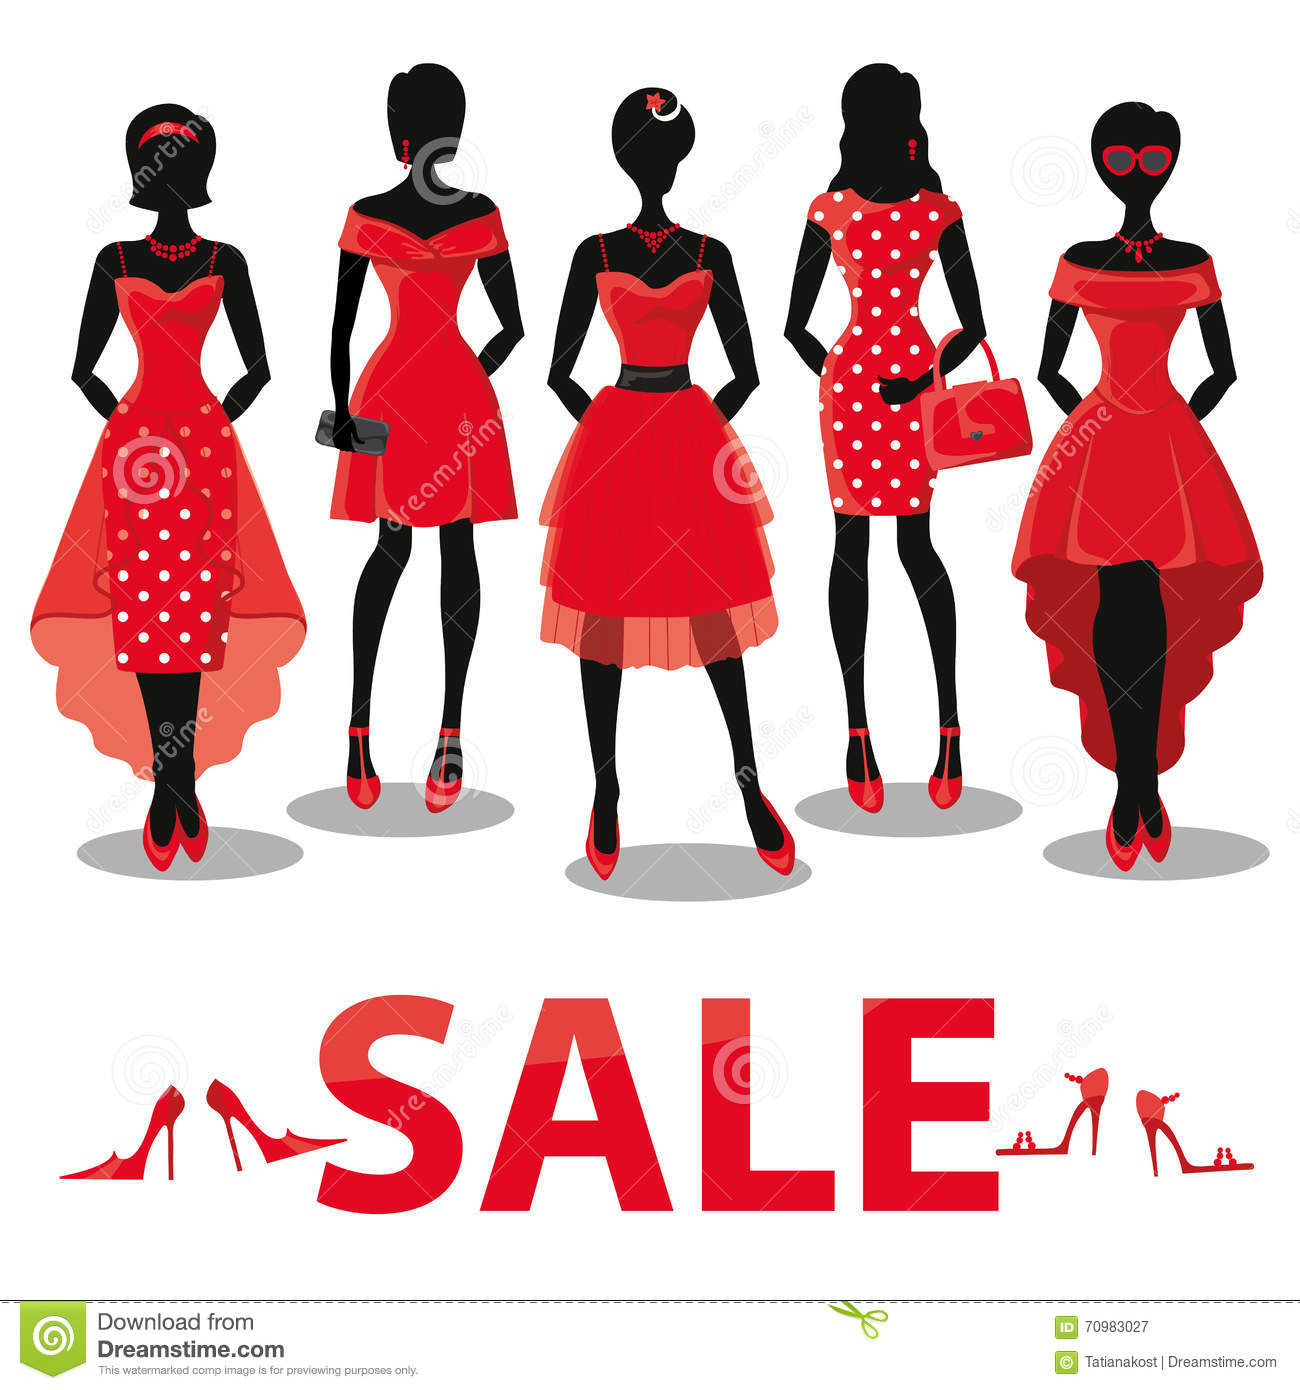 a283822d5 Black Friday Sale.Red Party Dresses